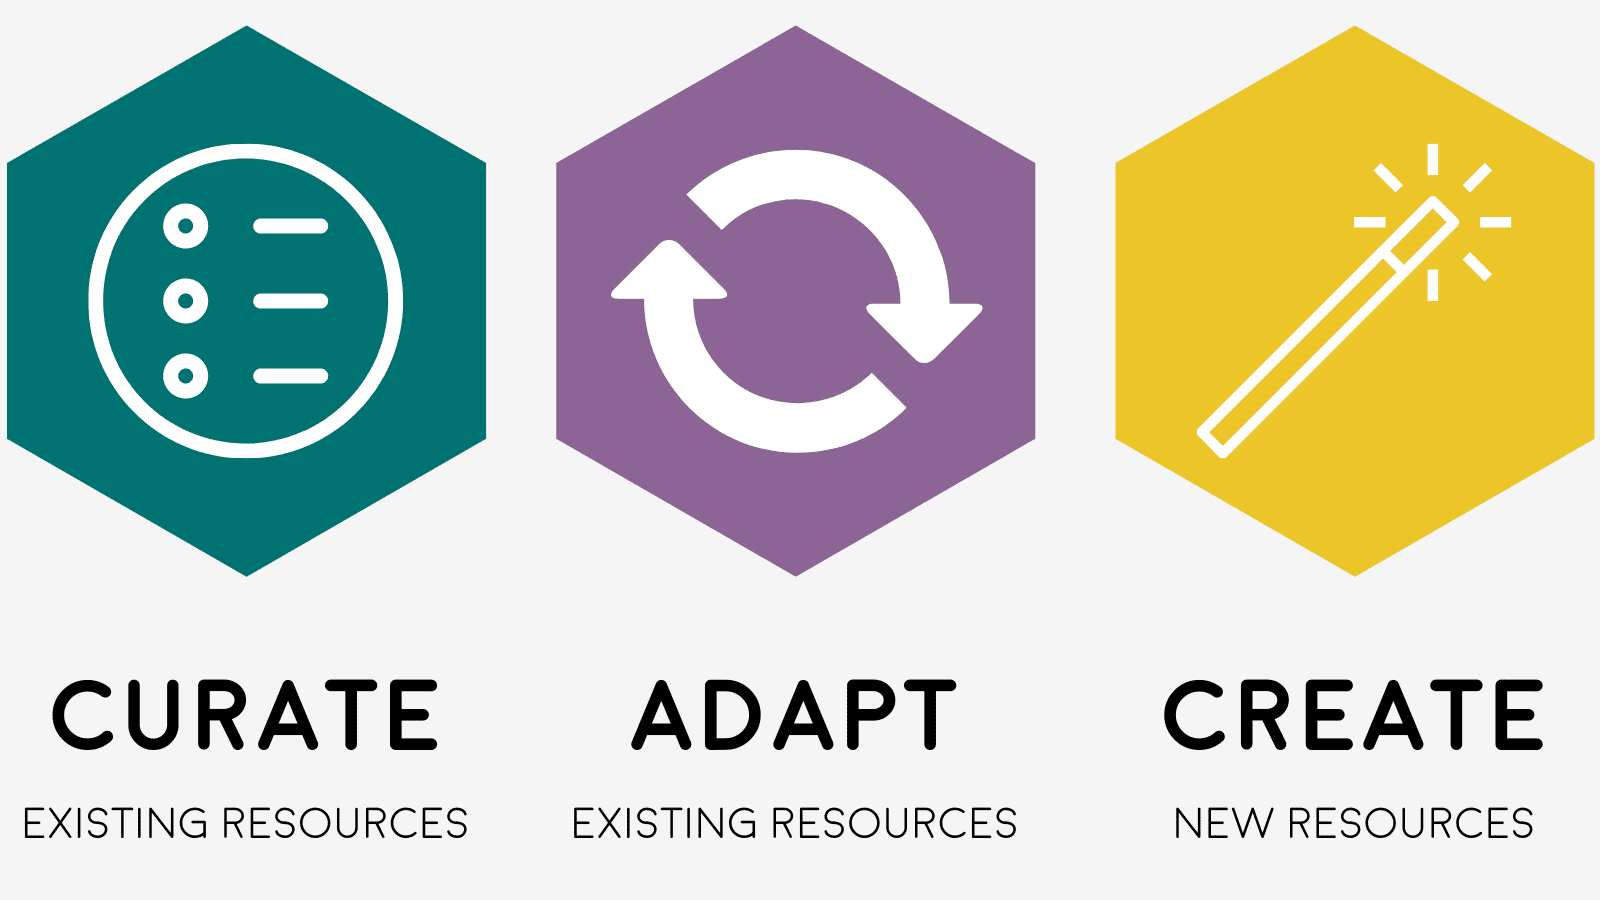 3 hexagons with icons (a list, a circle with arrows, and a wand) and the text, curate existing resources, update existing, adapt existing resources, create new resources